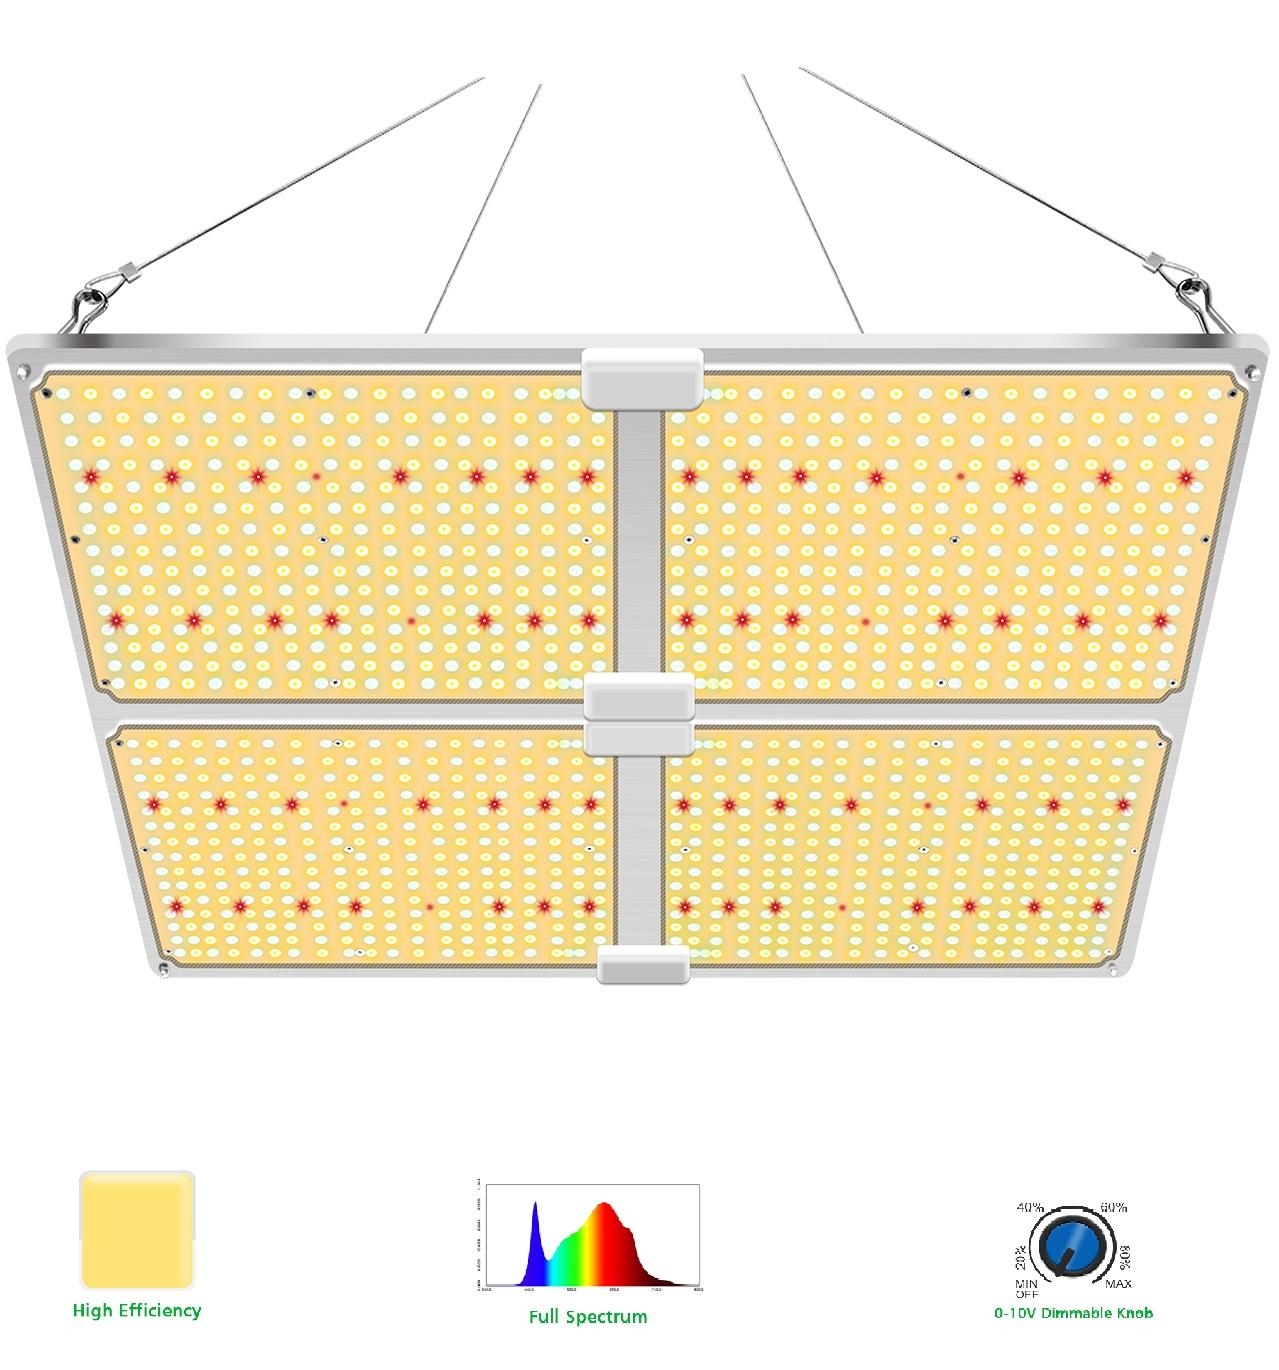 $10 OFF USA Stock Farmer Samsung Lm301b 480W Dimmable Full Spectrum Waterproof Led Grow Light for Indoor Plant